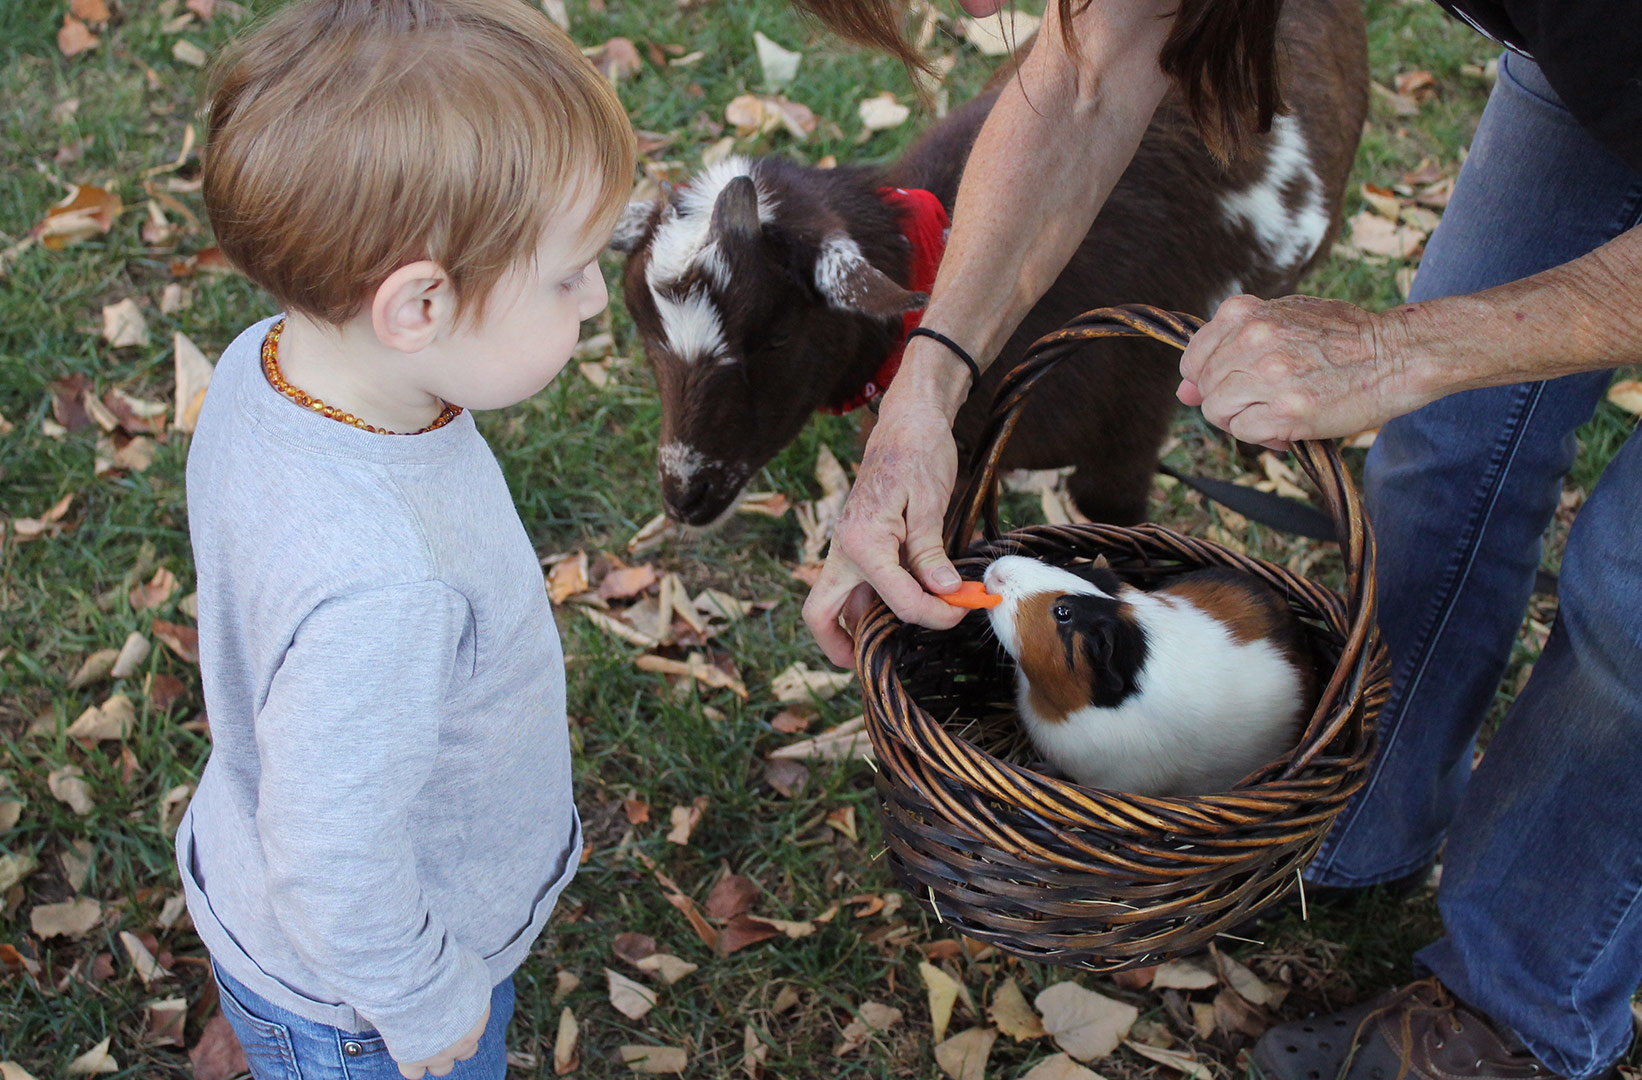 young boy petting a guinea pig in a basket held by his mother